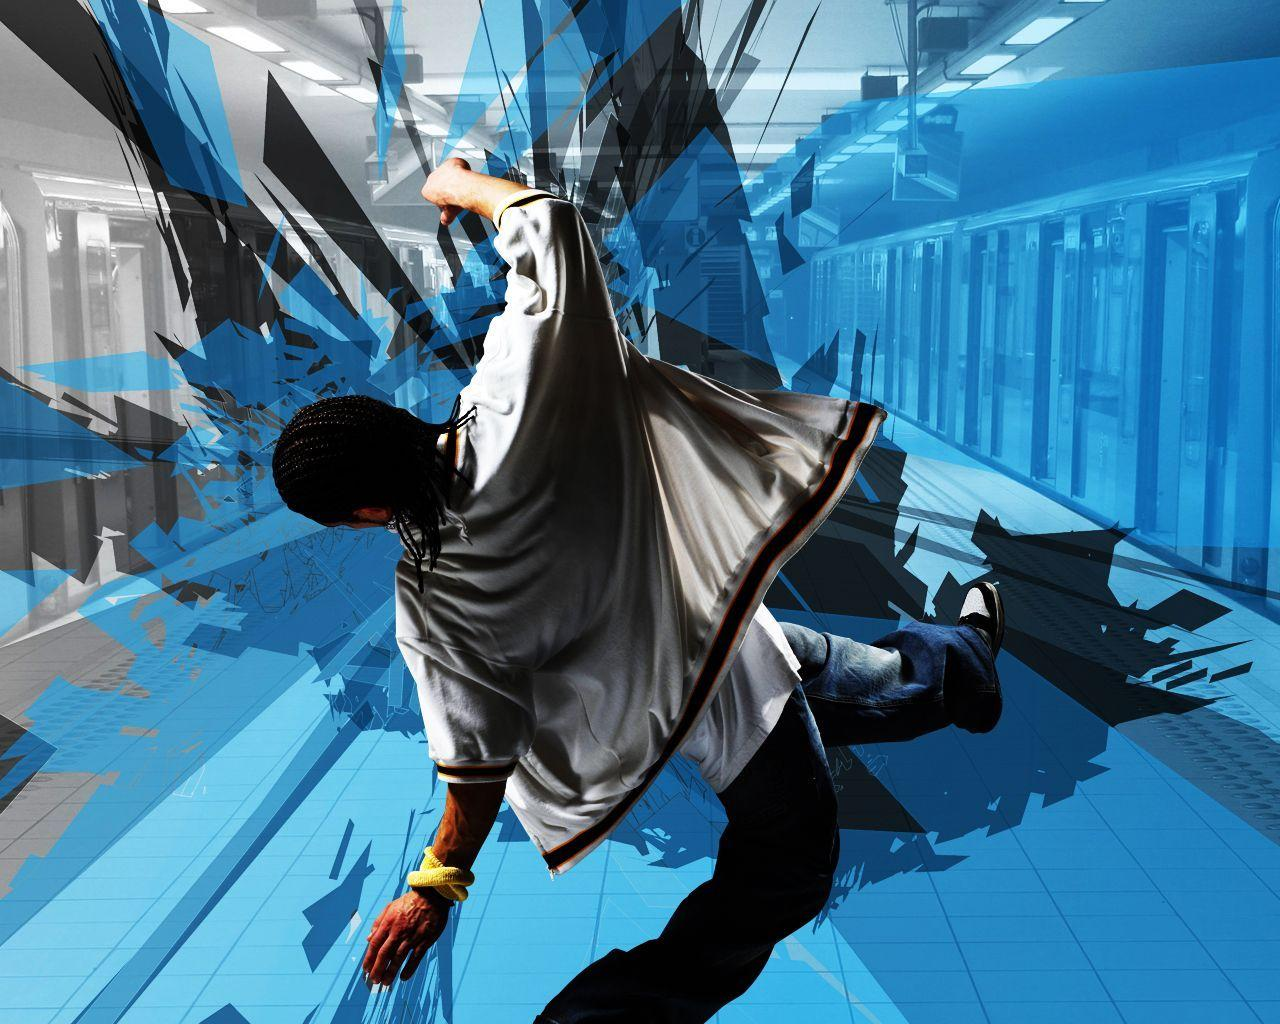 Art Street Dance Wallpapers PC Desktop 326481 Wallpapers